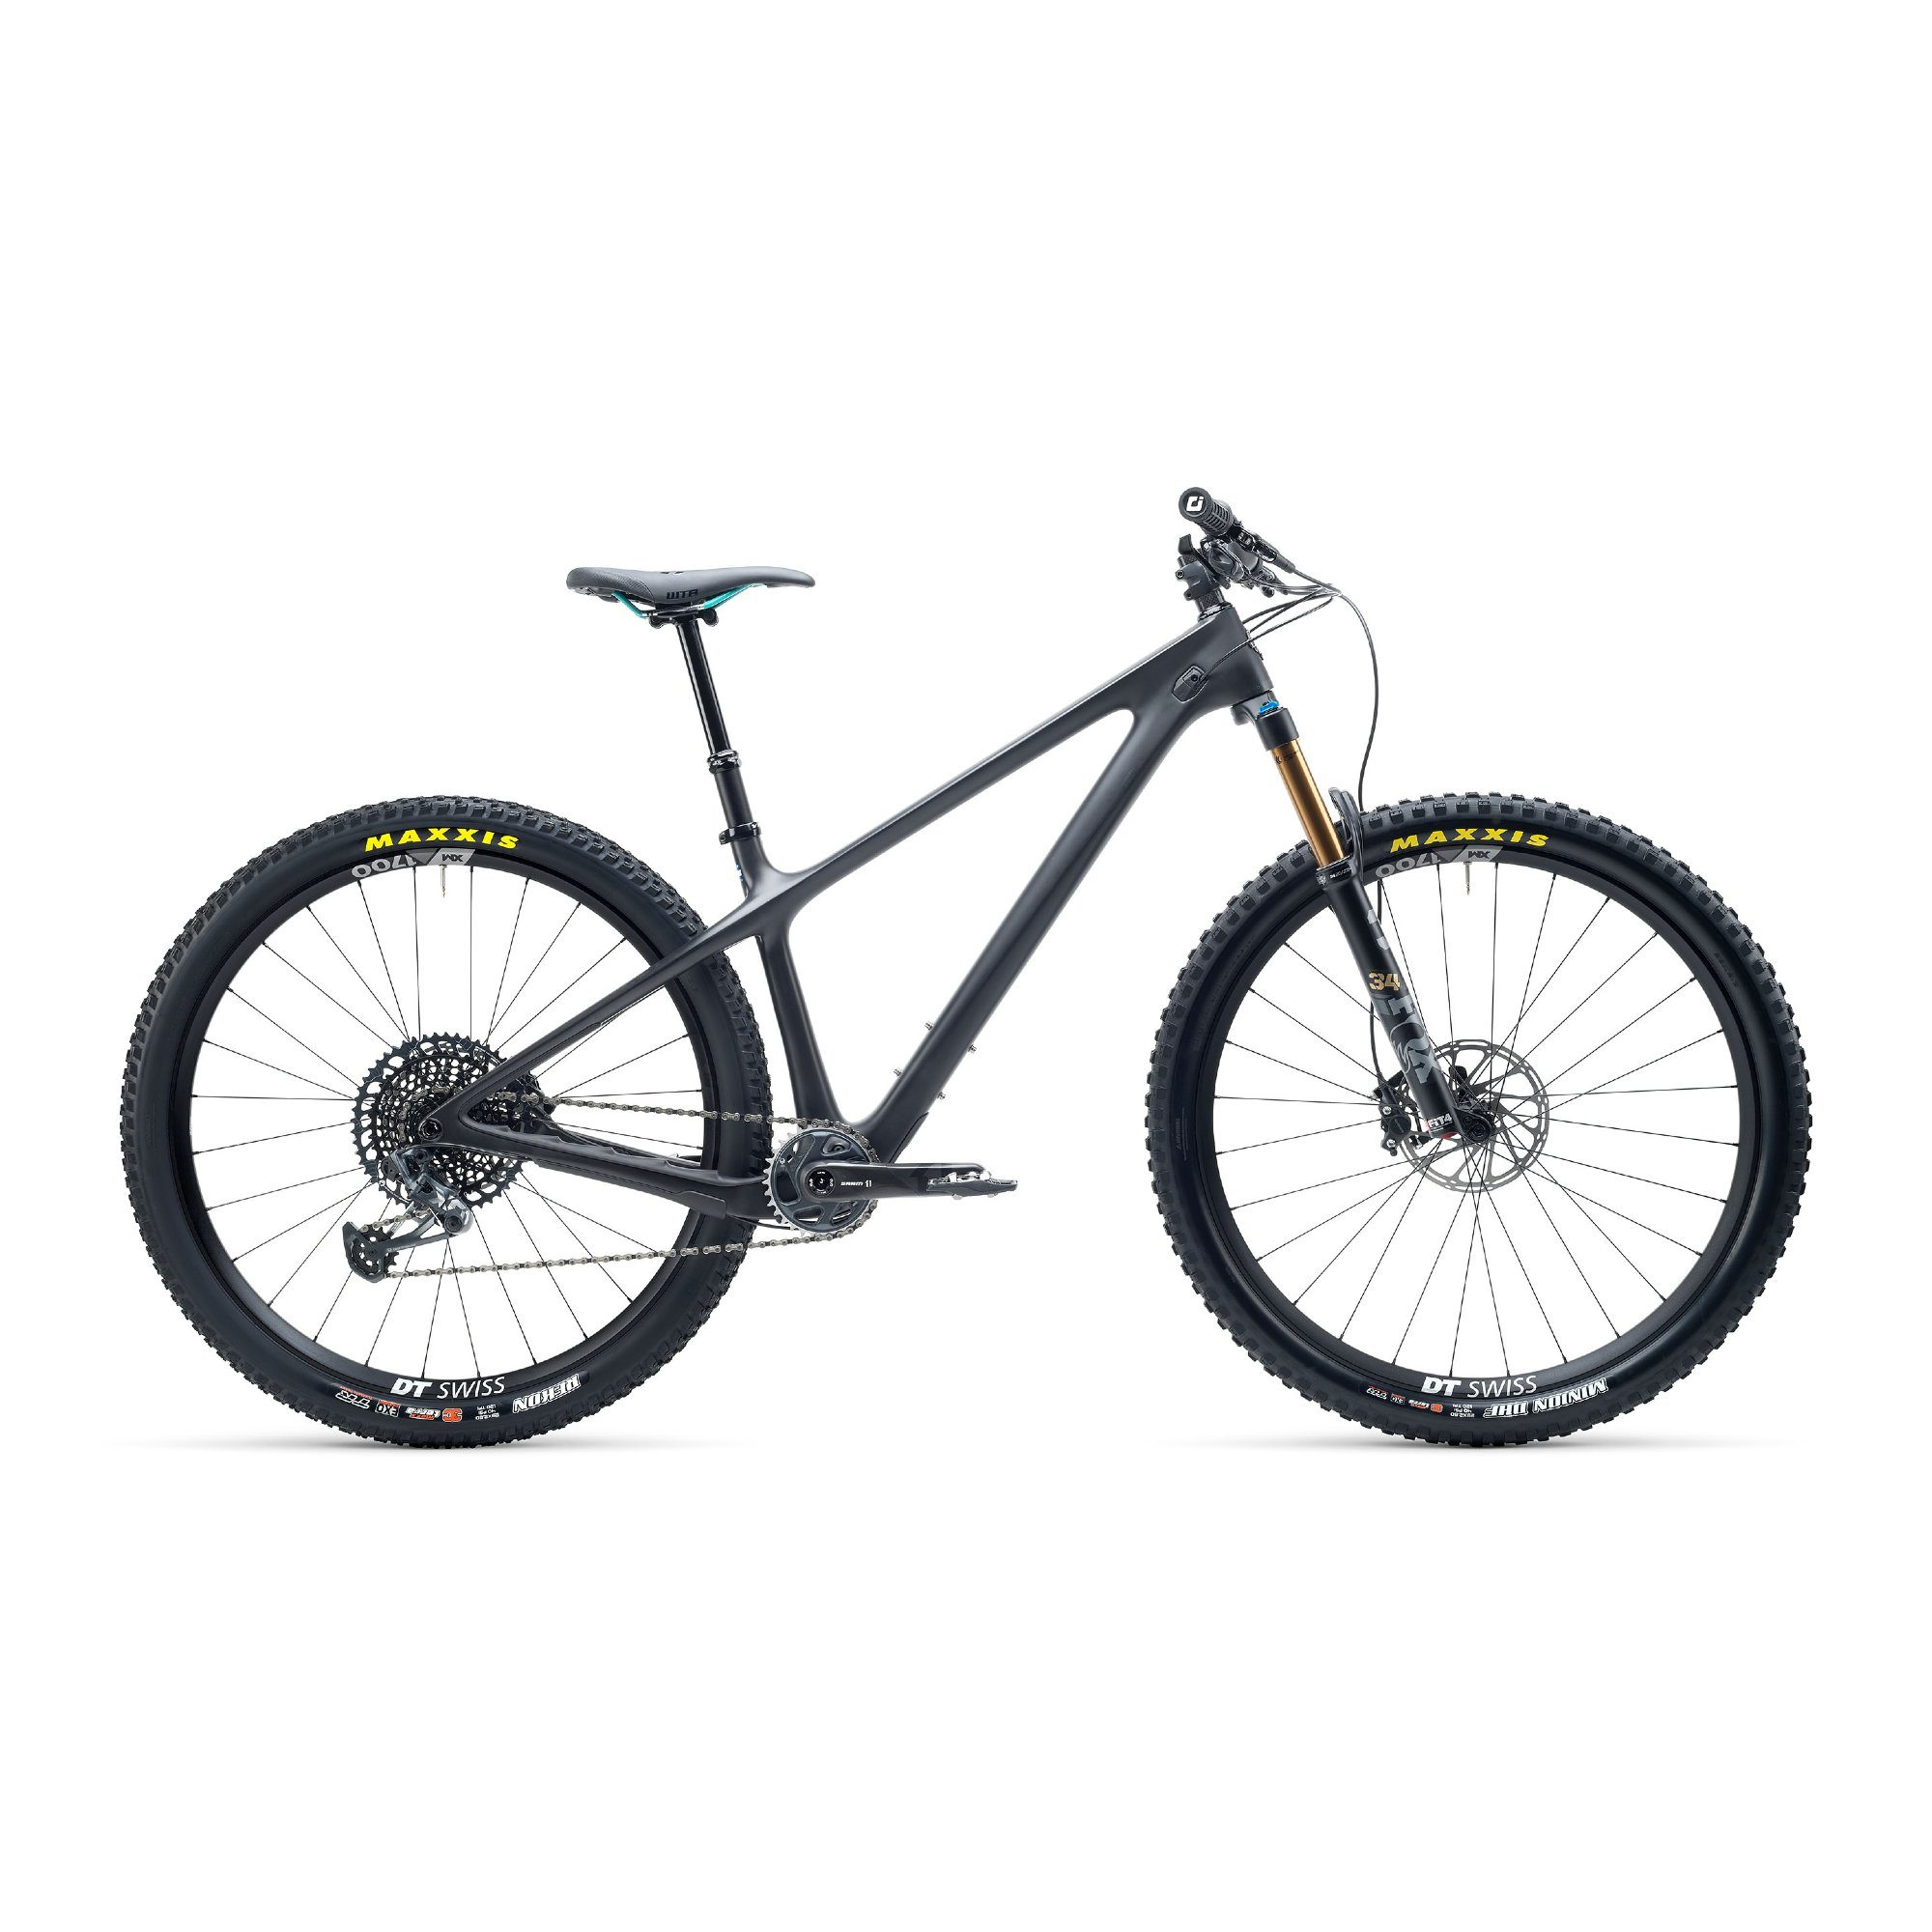 Yeti ARC T Series T2 XO1 29er Carbon Hardtail Mountain Bike 2021 Raw